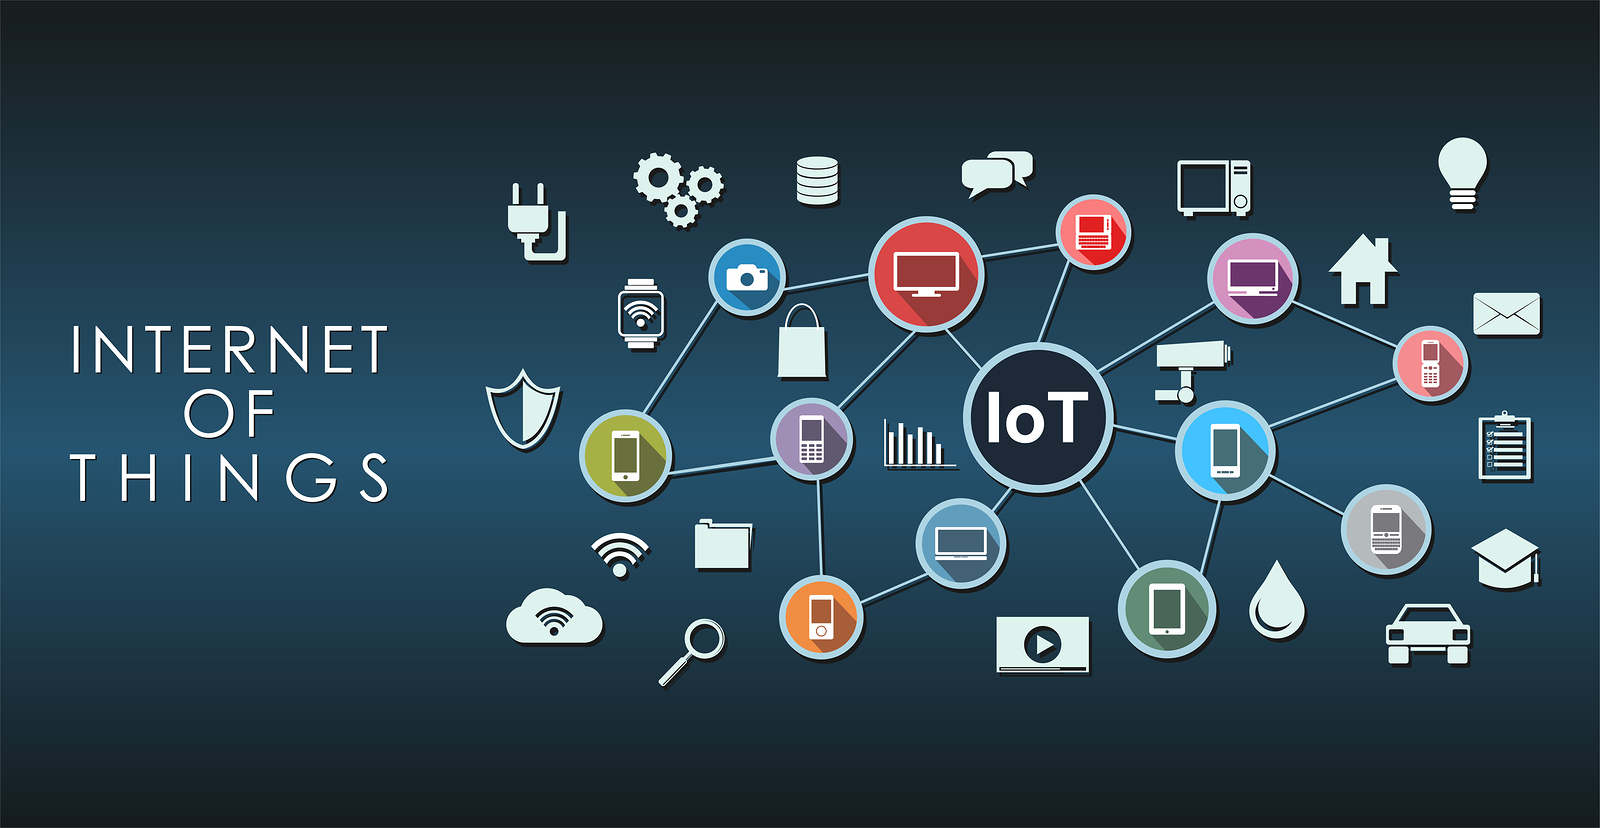 Technology Management Image: IoT Innovates Intelligent Applications To Create A